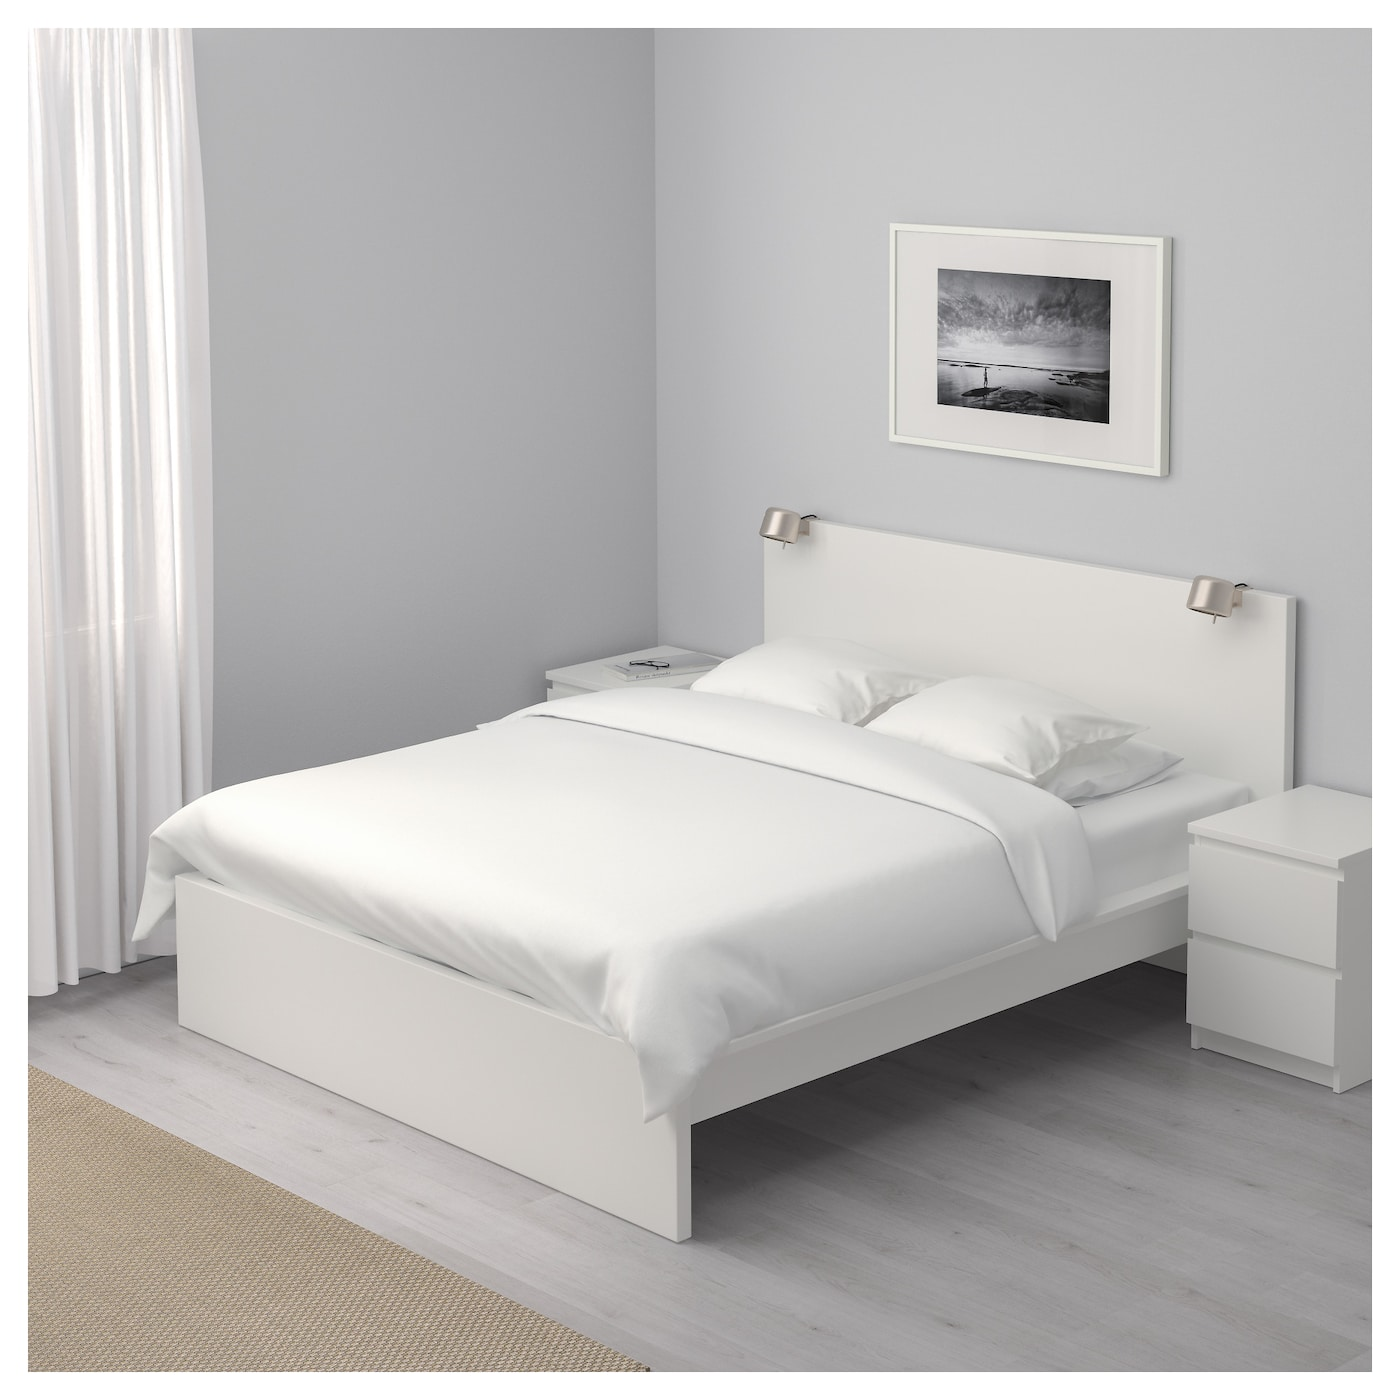 malm cadre de lit haut blanc 180x200 cm ikea. Black Bedroom Furniture Sets. Home Design Ideas